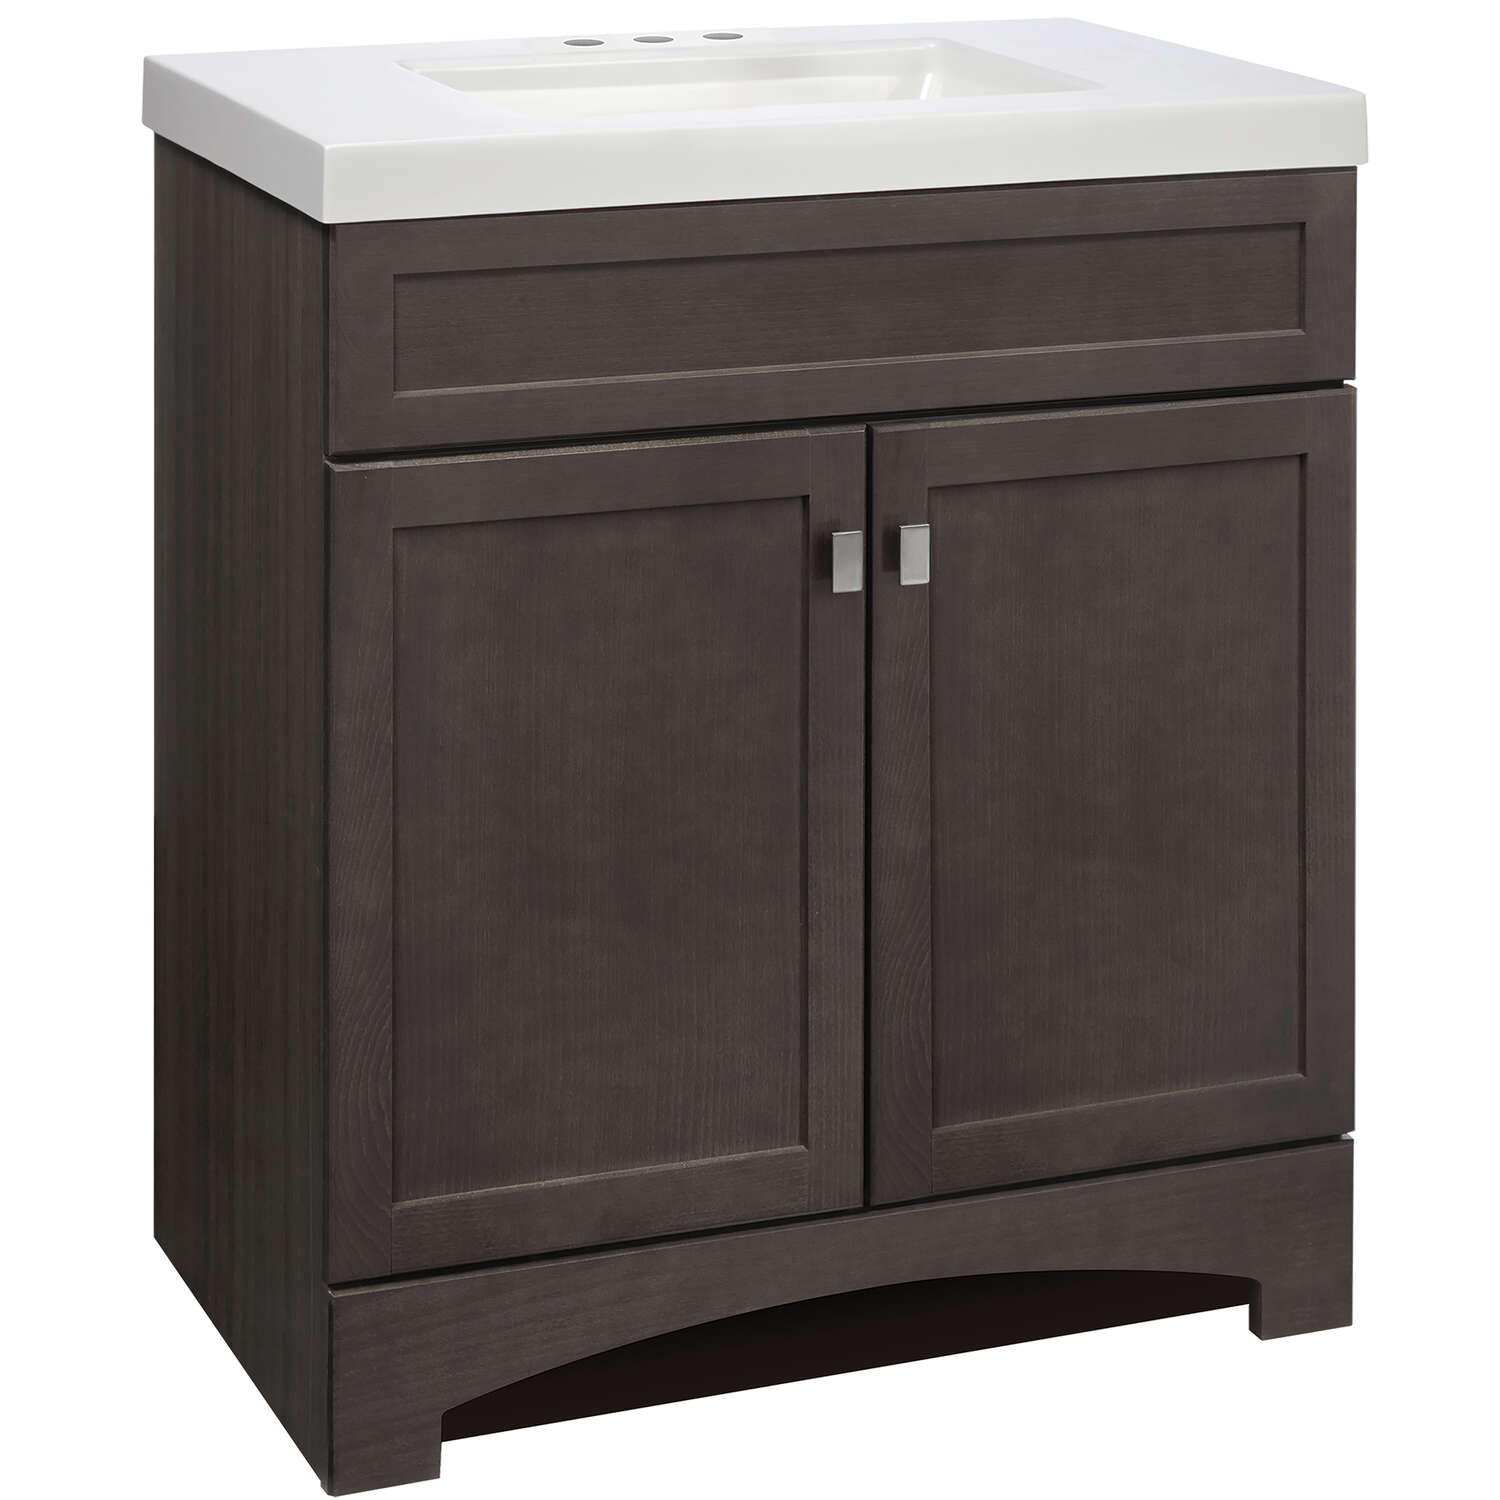 Continental Cabinets  Single  Semi-Gloss  Grey  Vanity Combo  30 in. W x 18 in. D x 33-1/2 in. H